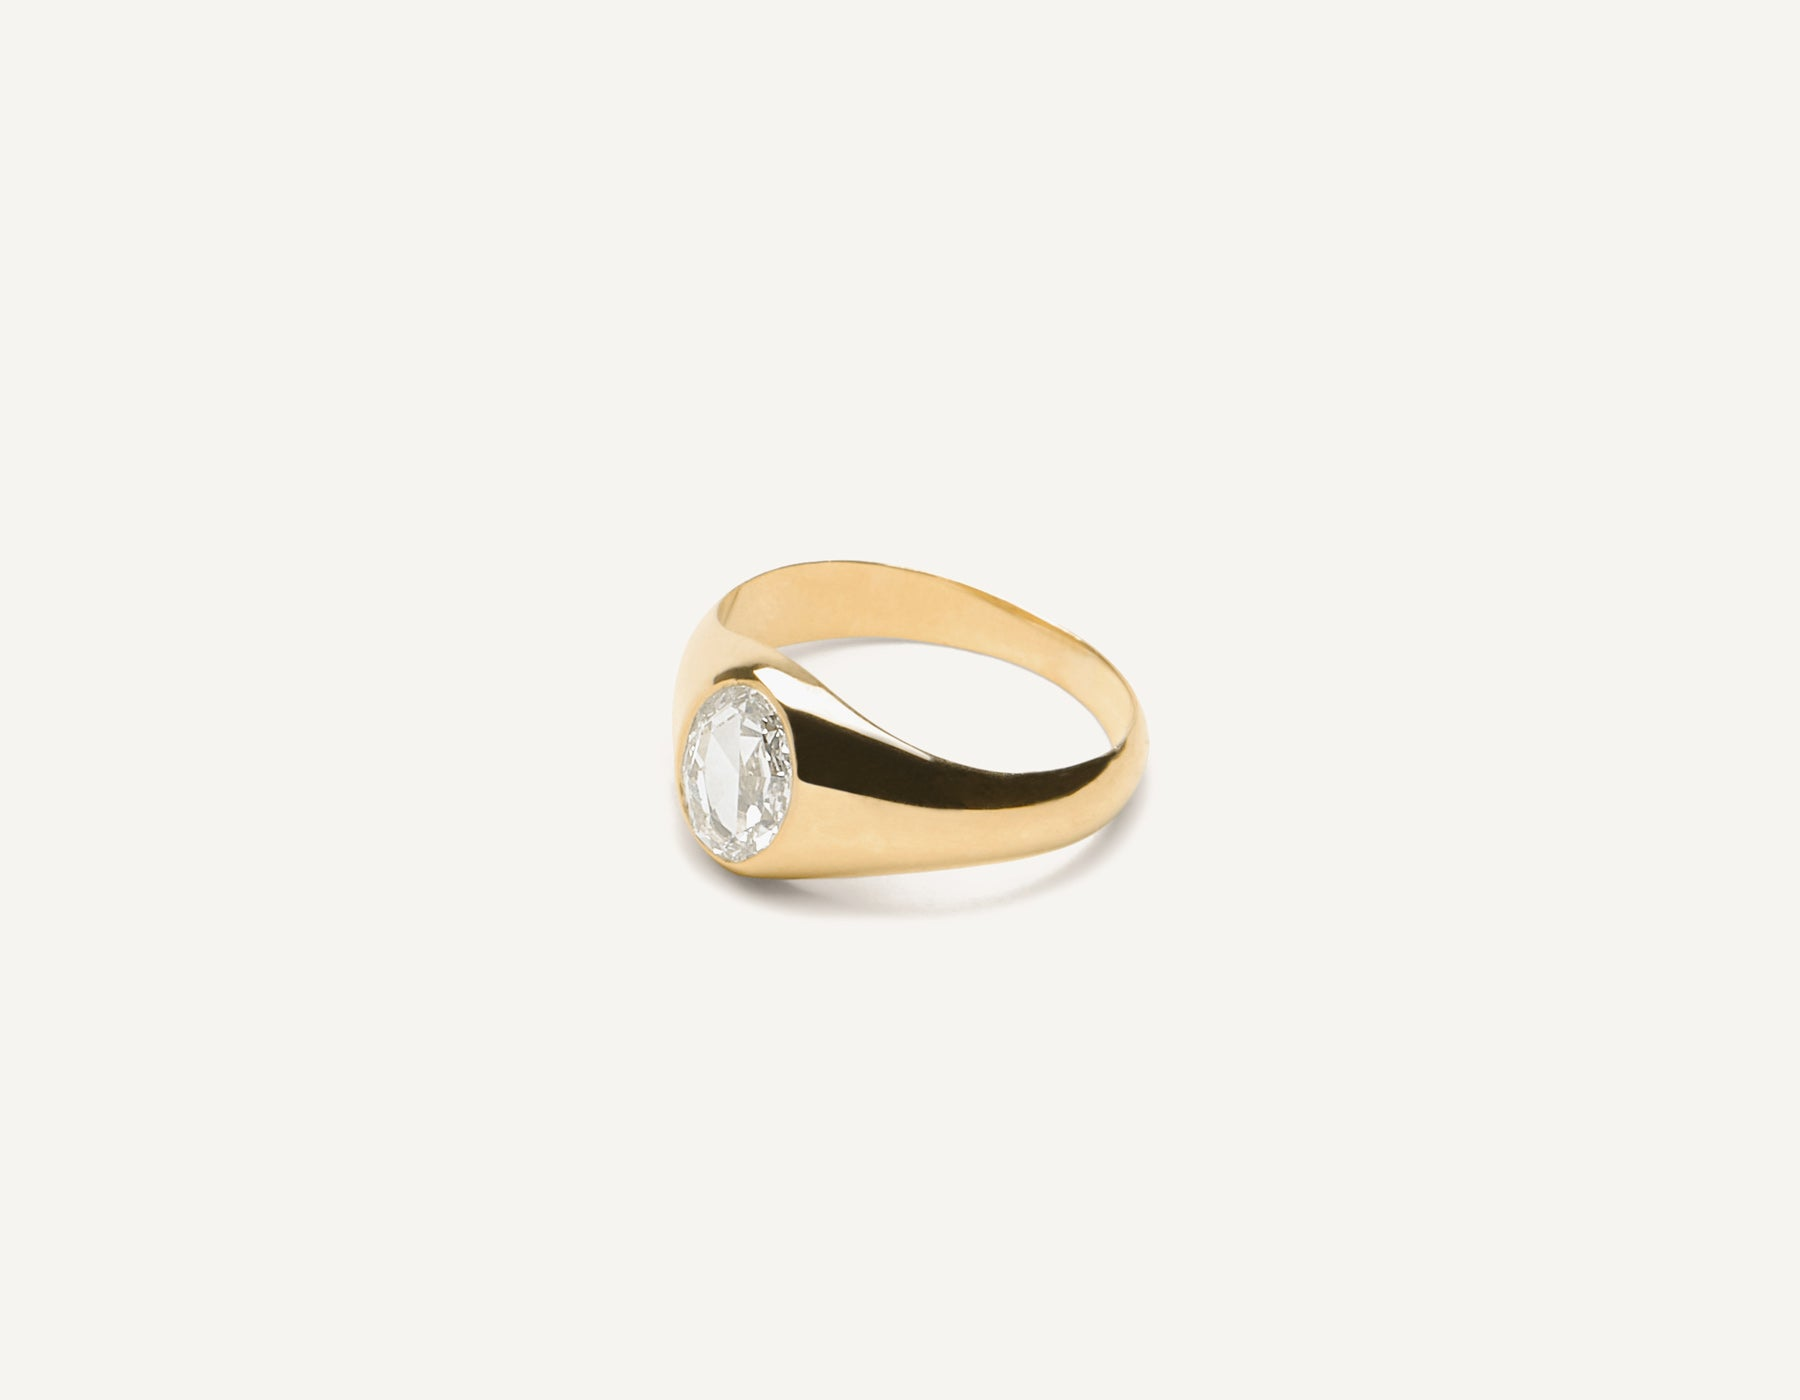 Vrai & Oro 18k solid gold Minimalist vintage Oval Rose Signet ring with .65 carat diamond, 18K Yellow Gold